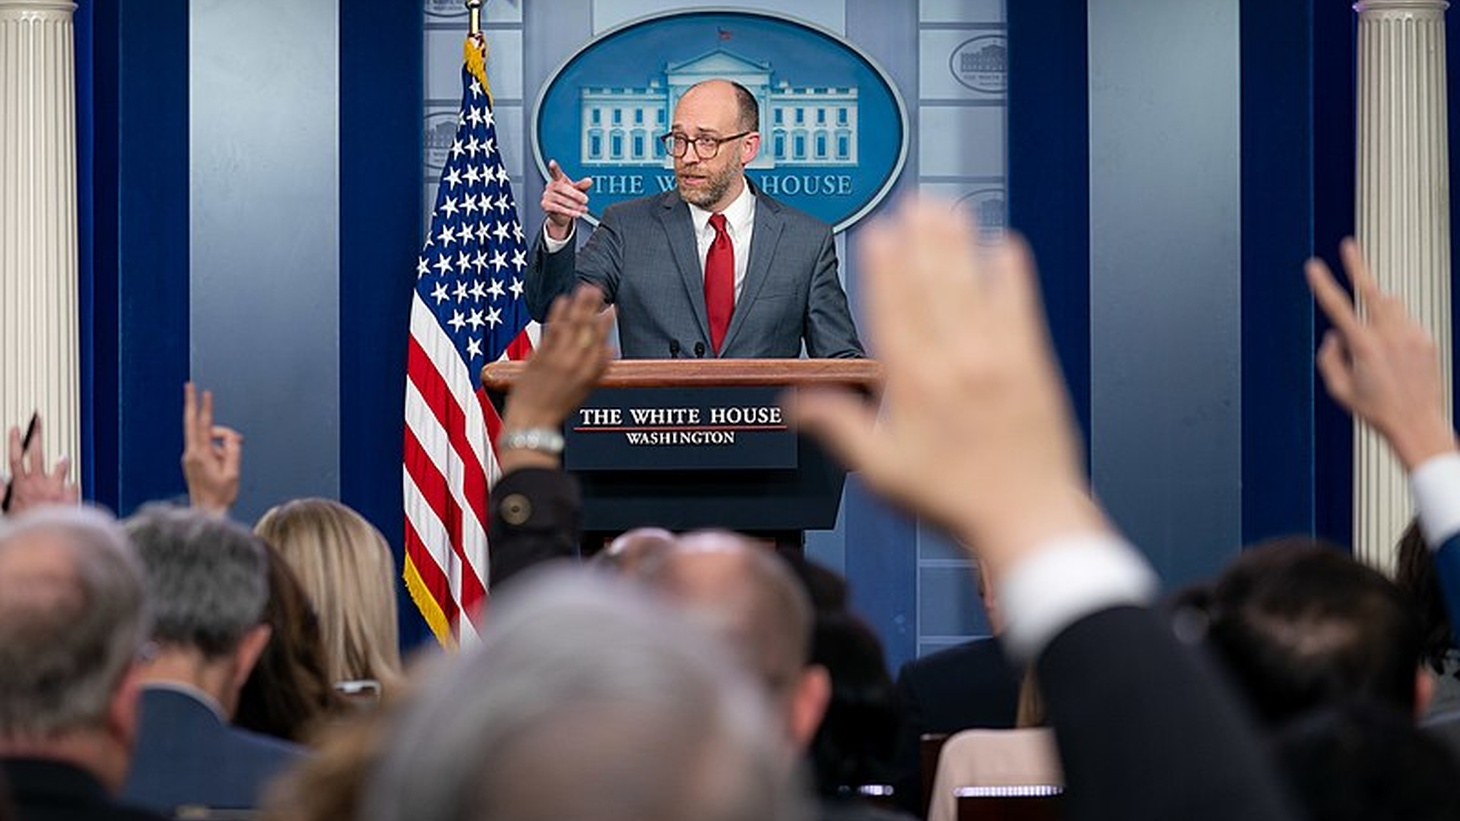 Reporters raise their hands to ask a question of Acting Director of the Office of Management and Budget Russell Vought during a press briefing Monday, March 11, 2019, in the James S. Brady Press Briefing Room of the White House.